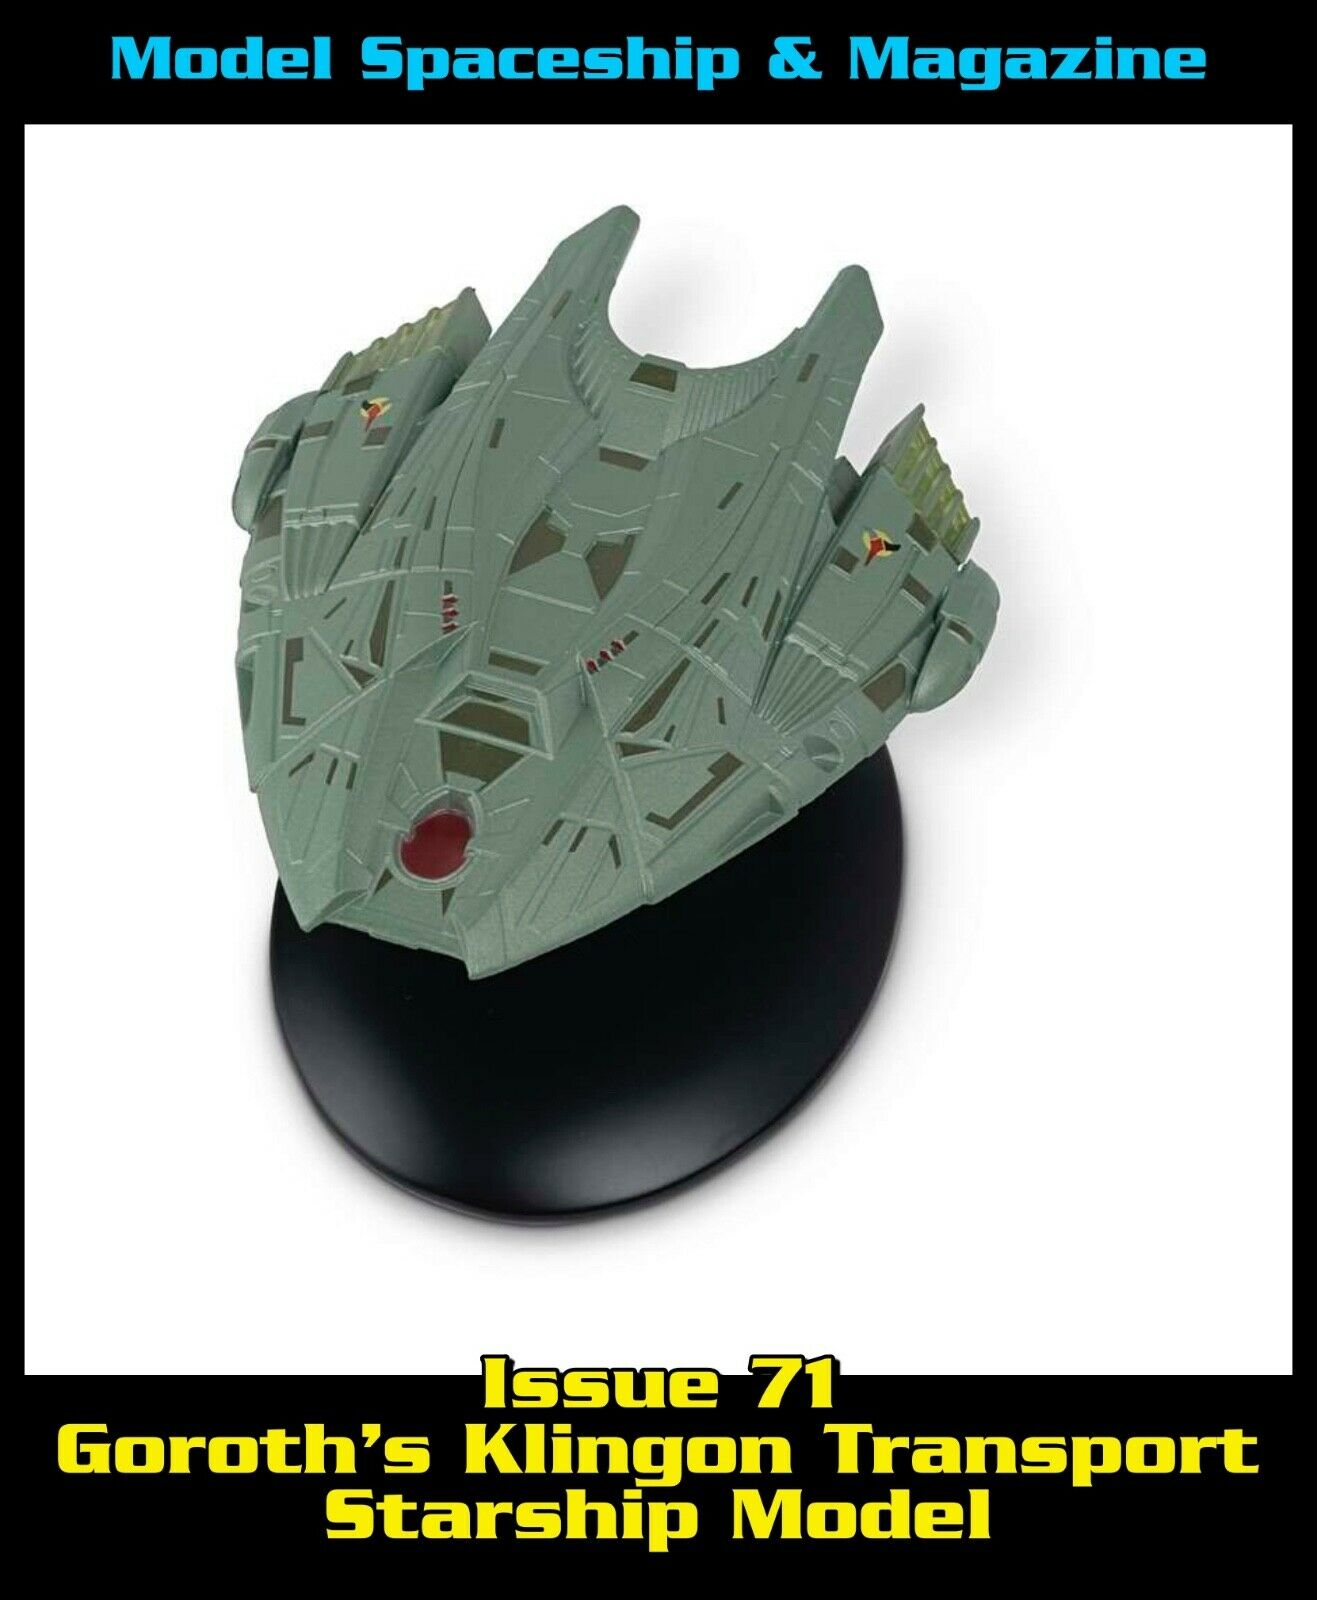 Issue 71: Goroth's Klingon Transport